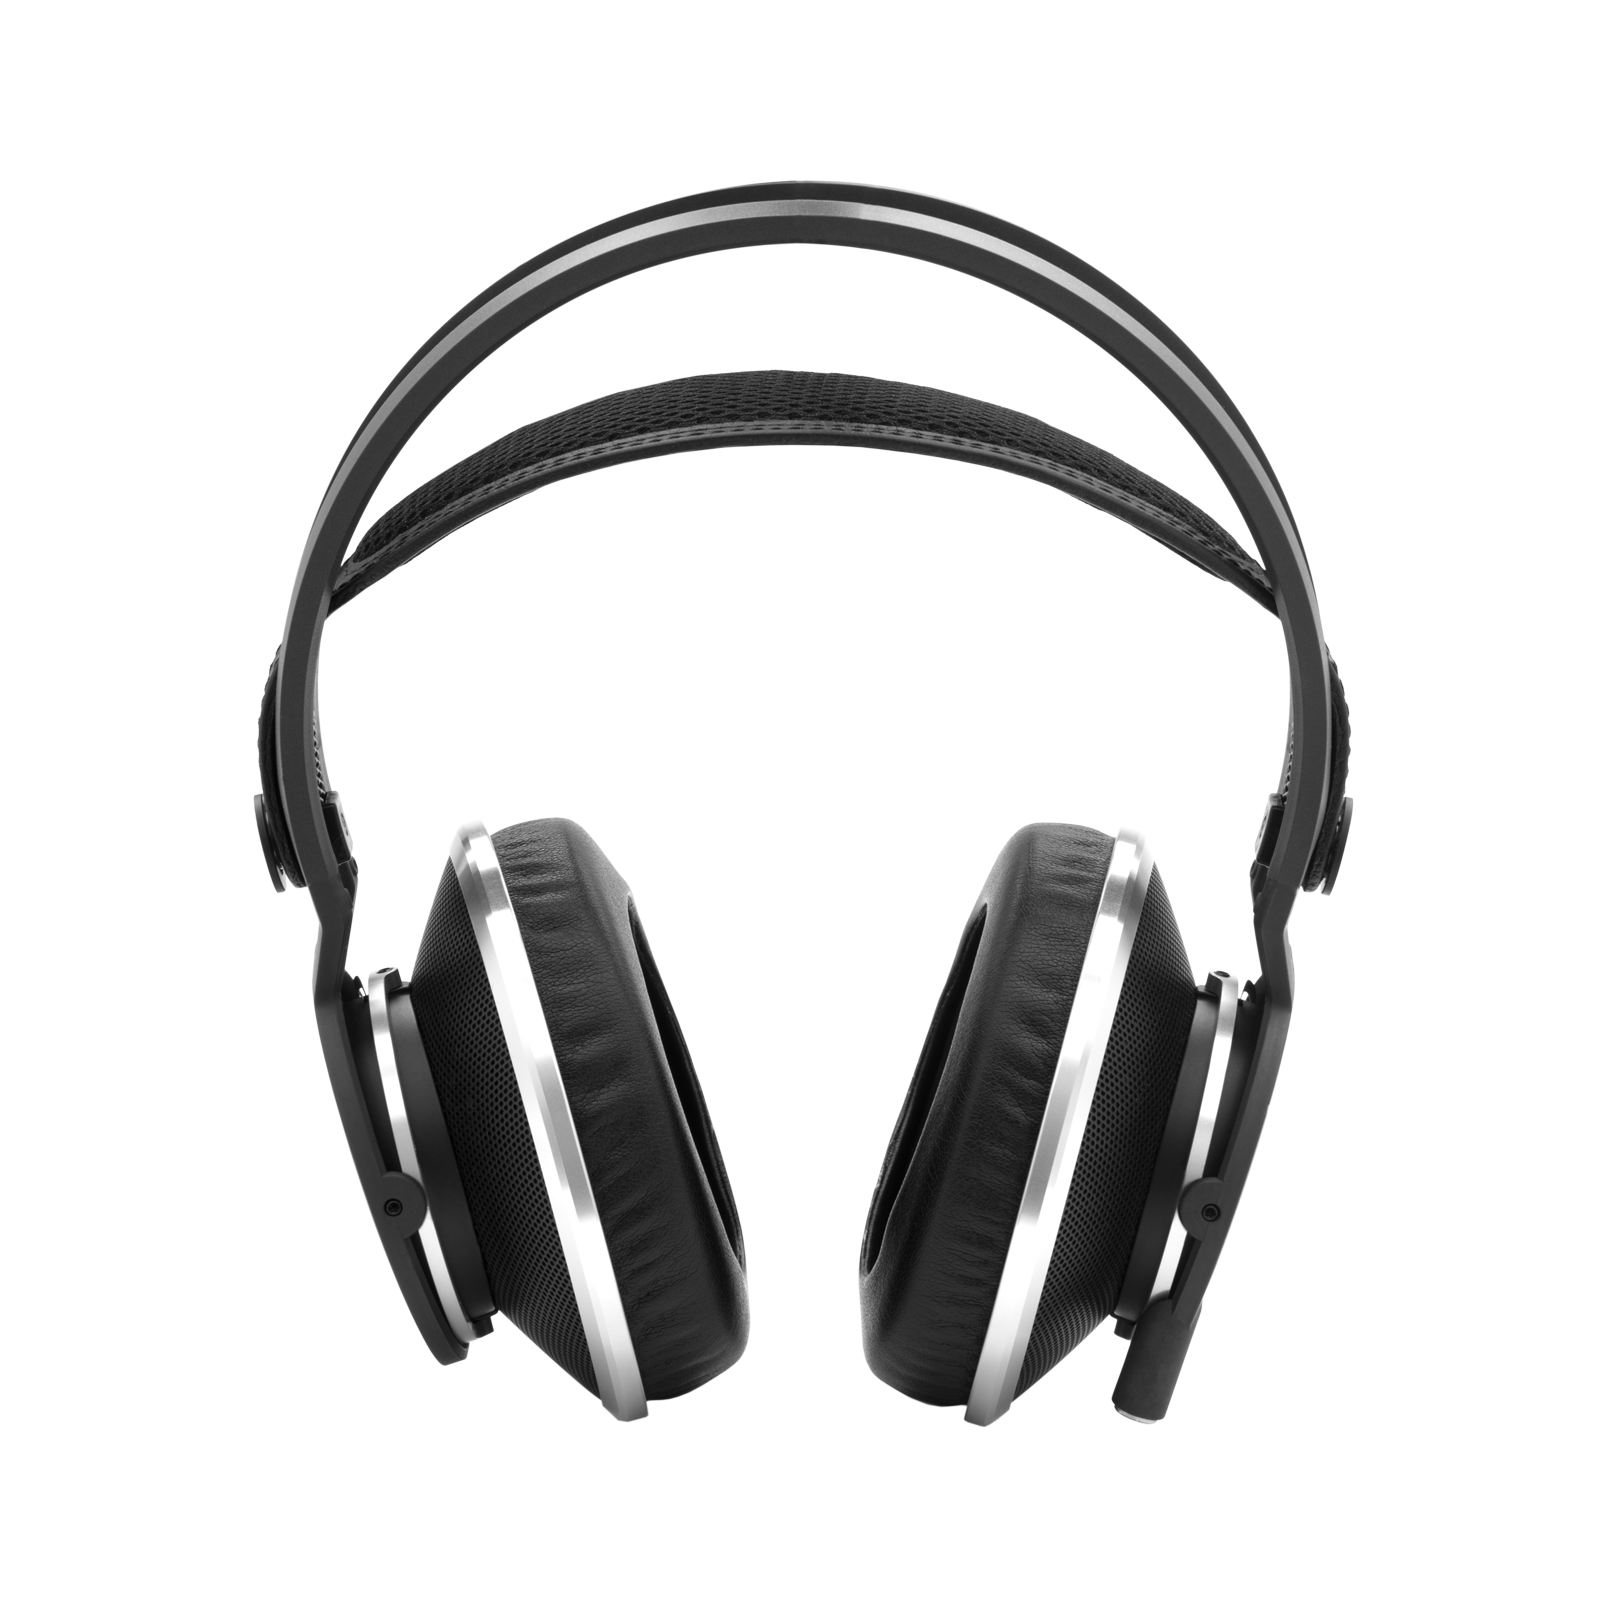 K812 - Black - Superior reference headphones - Front